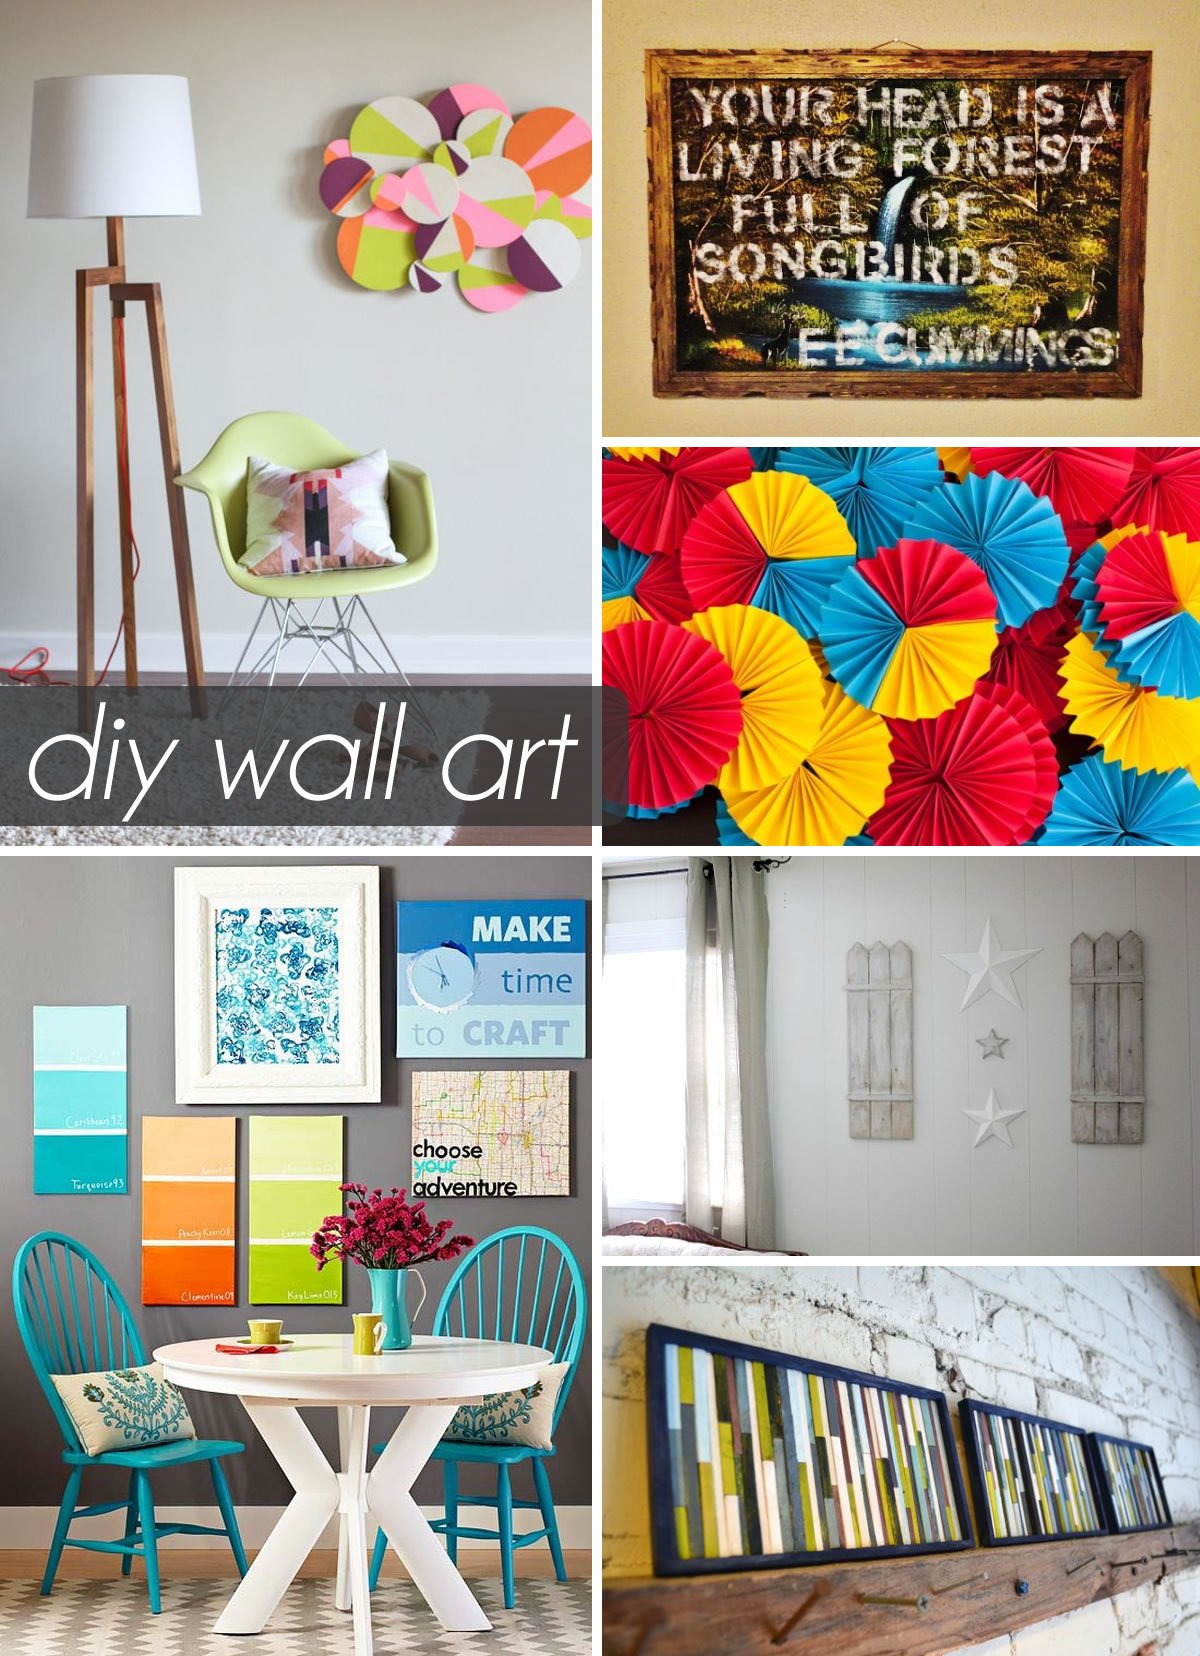 50 Beautiful DIY Wall Art Ideas For Your Home on Creative Wall Art Ideas  id=47413